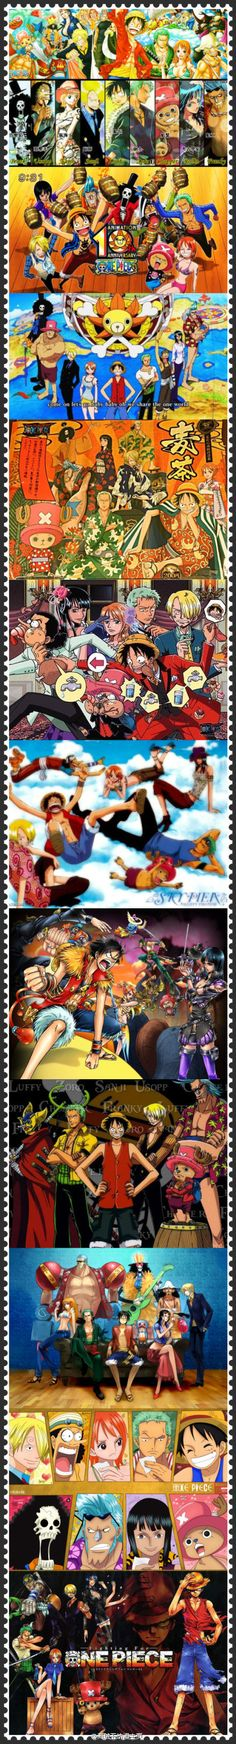 One piece - throughout the years